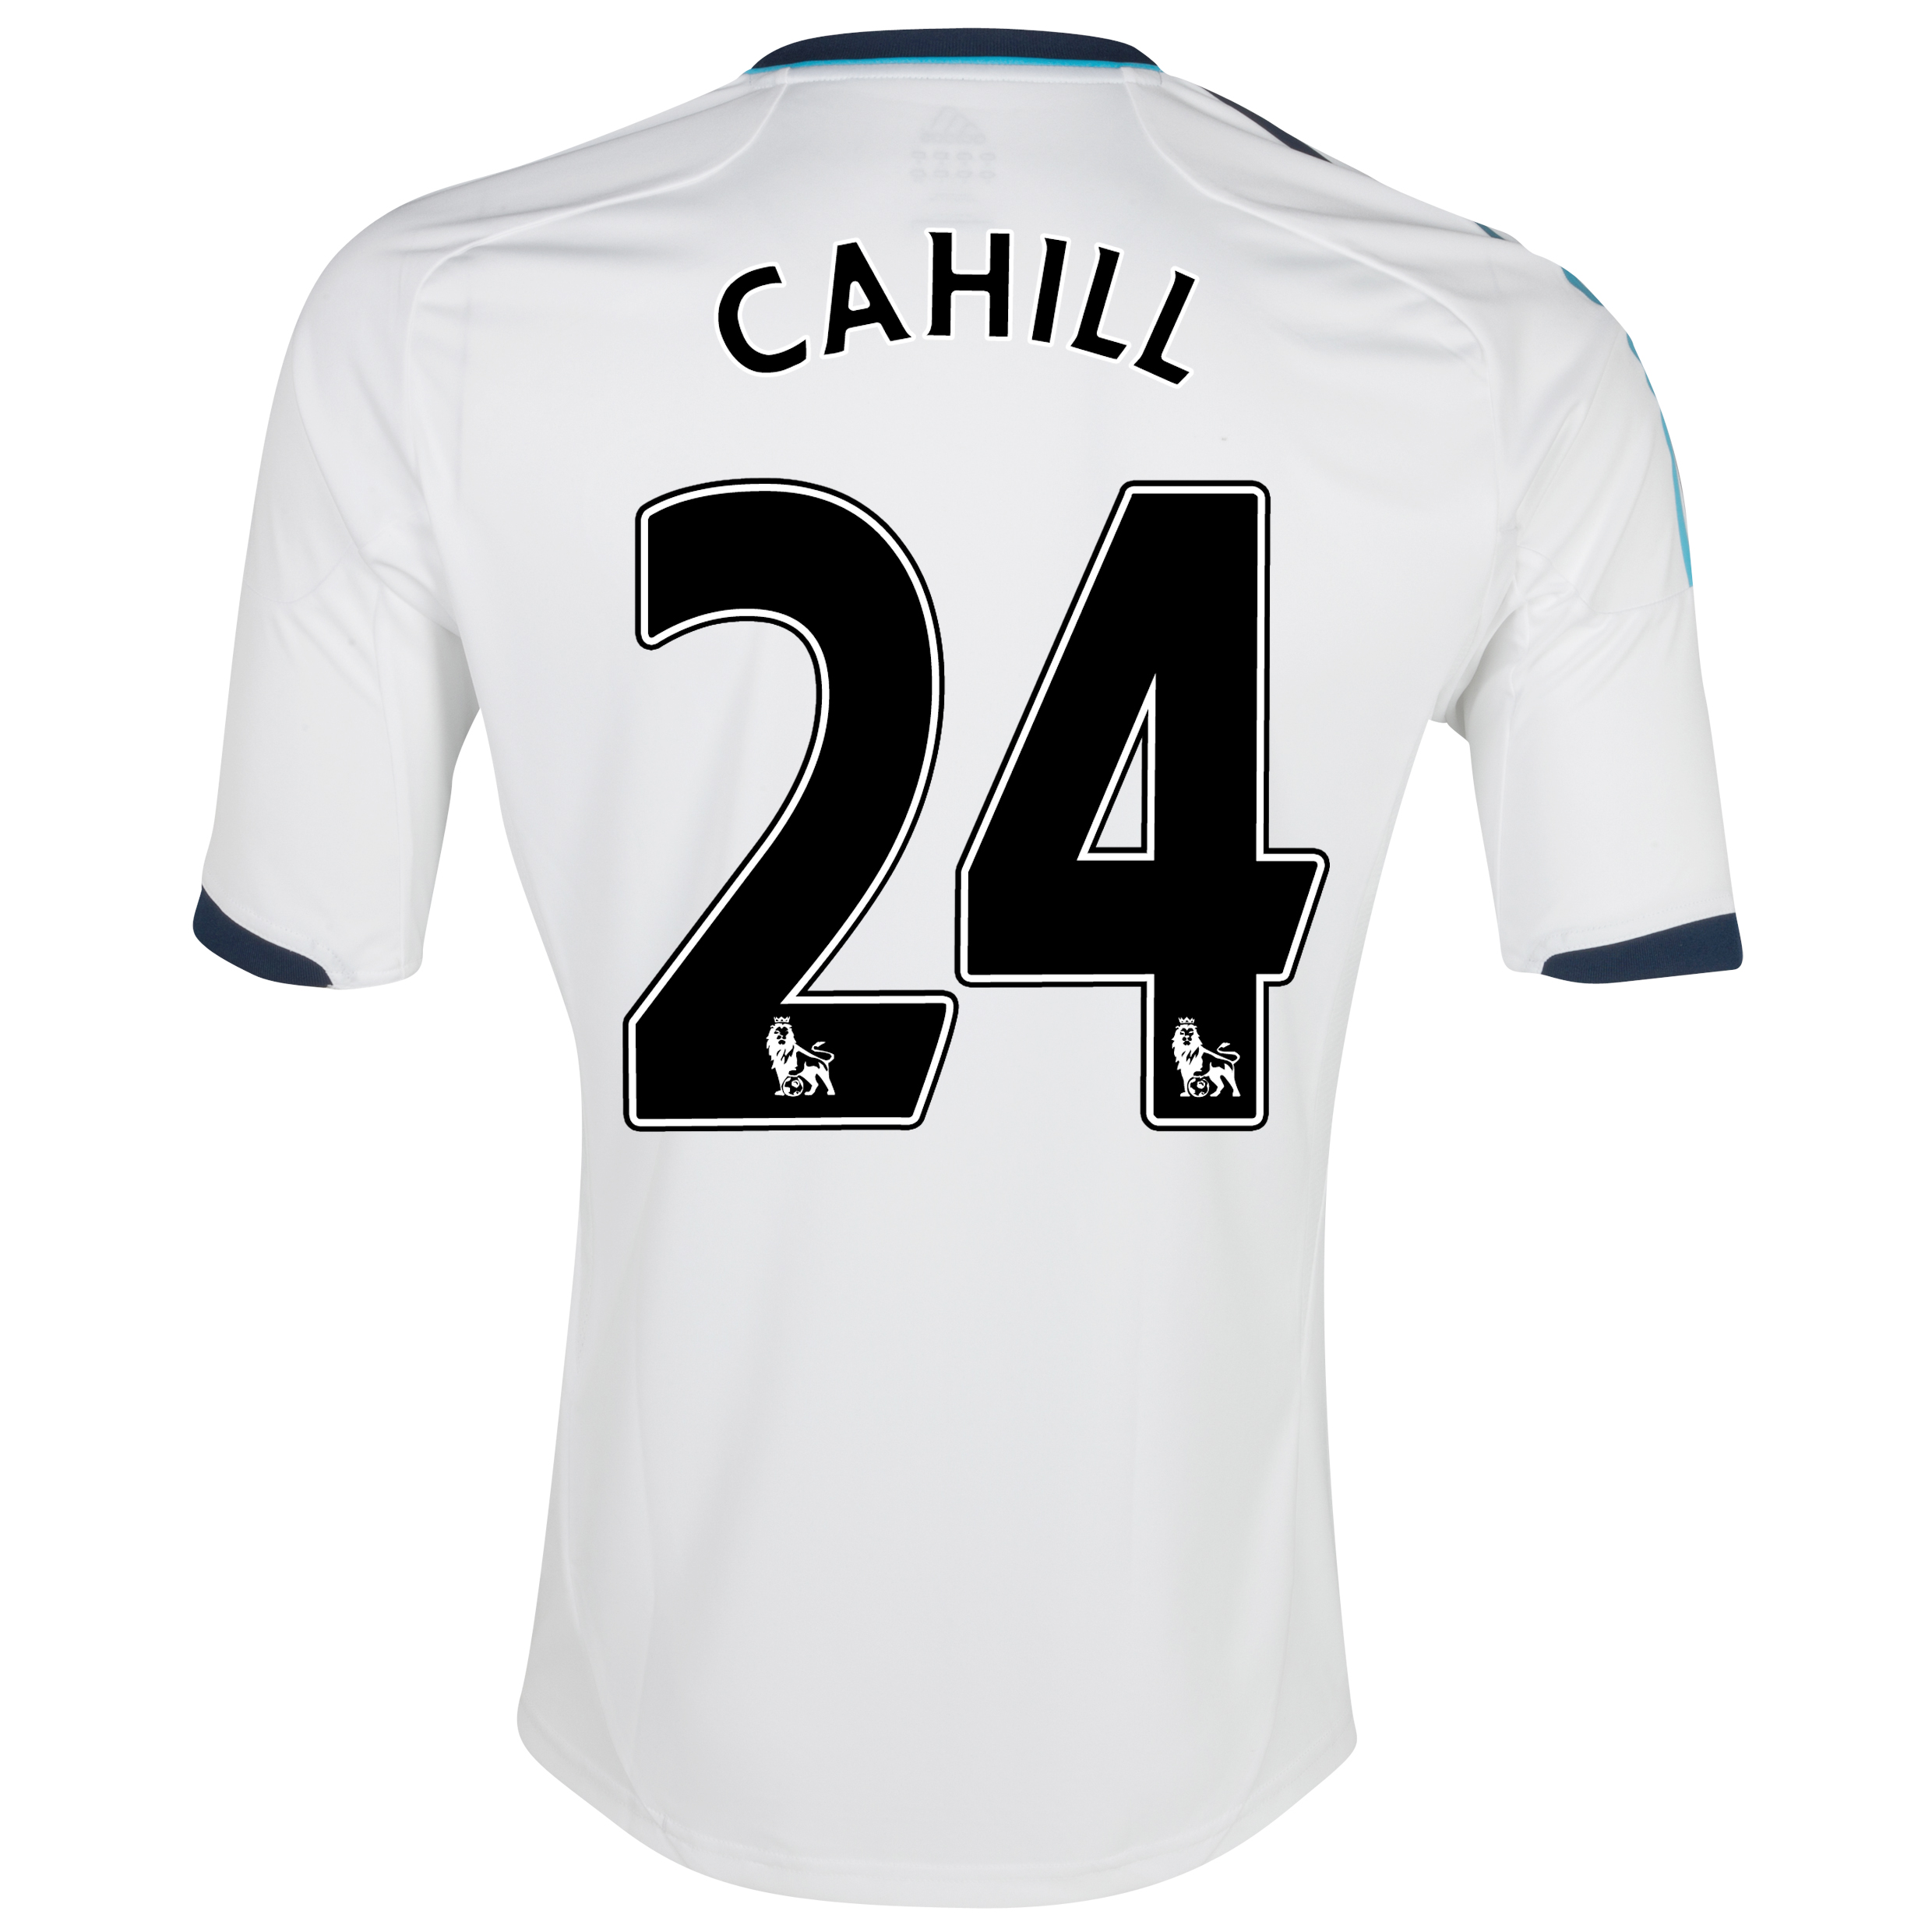 Chelsea Away Shirt 2012/13 with Cahill 24 printing